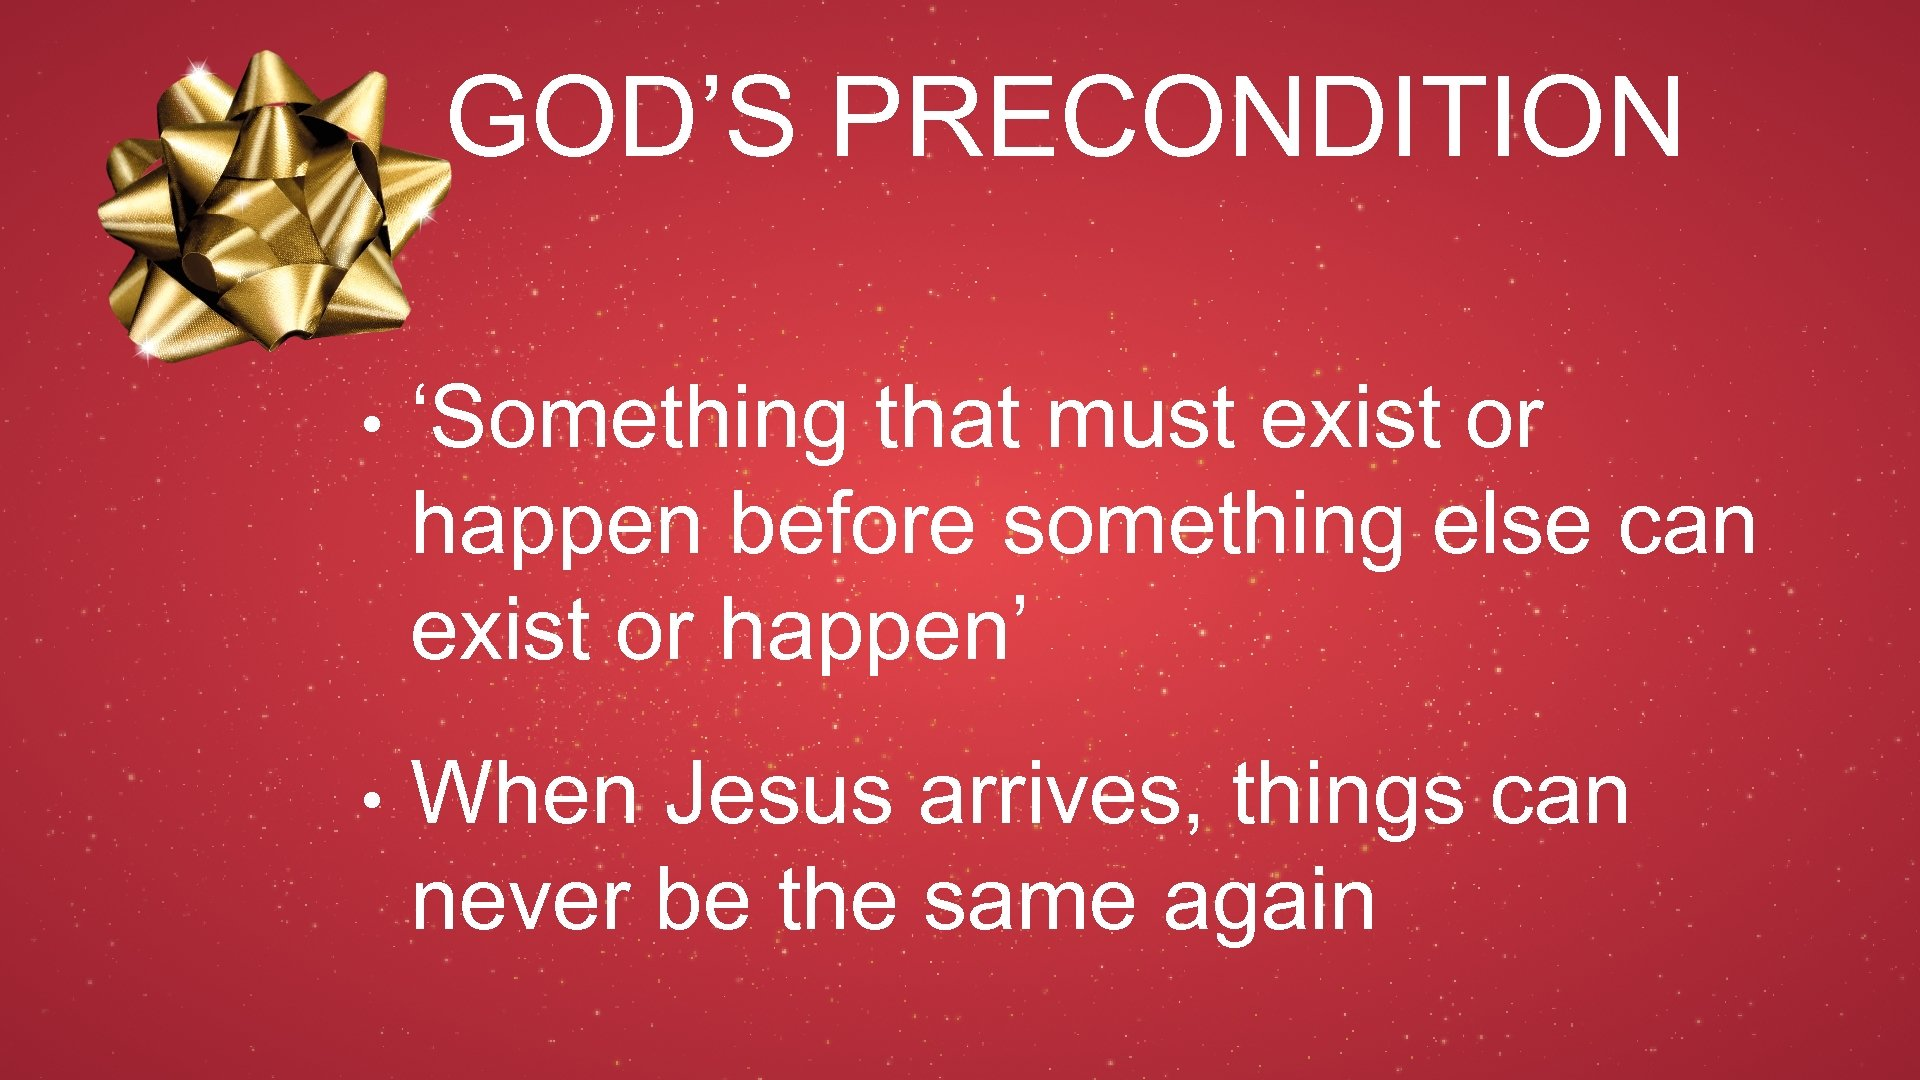 GOD'S PRECONDITION • 'Something that must exist or happen before something else can exist